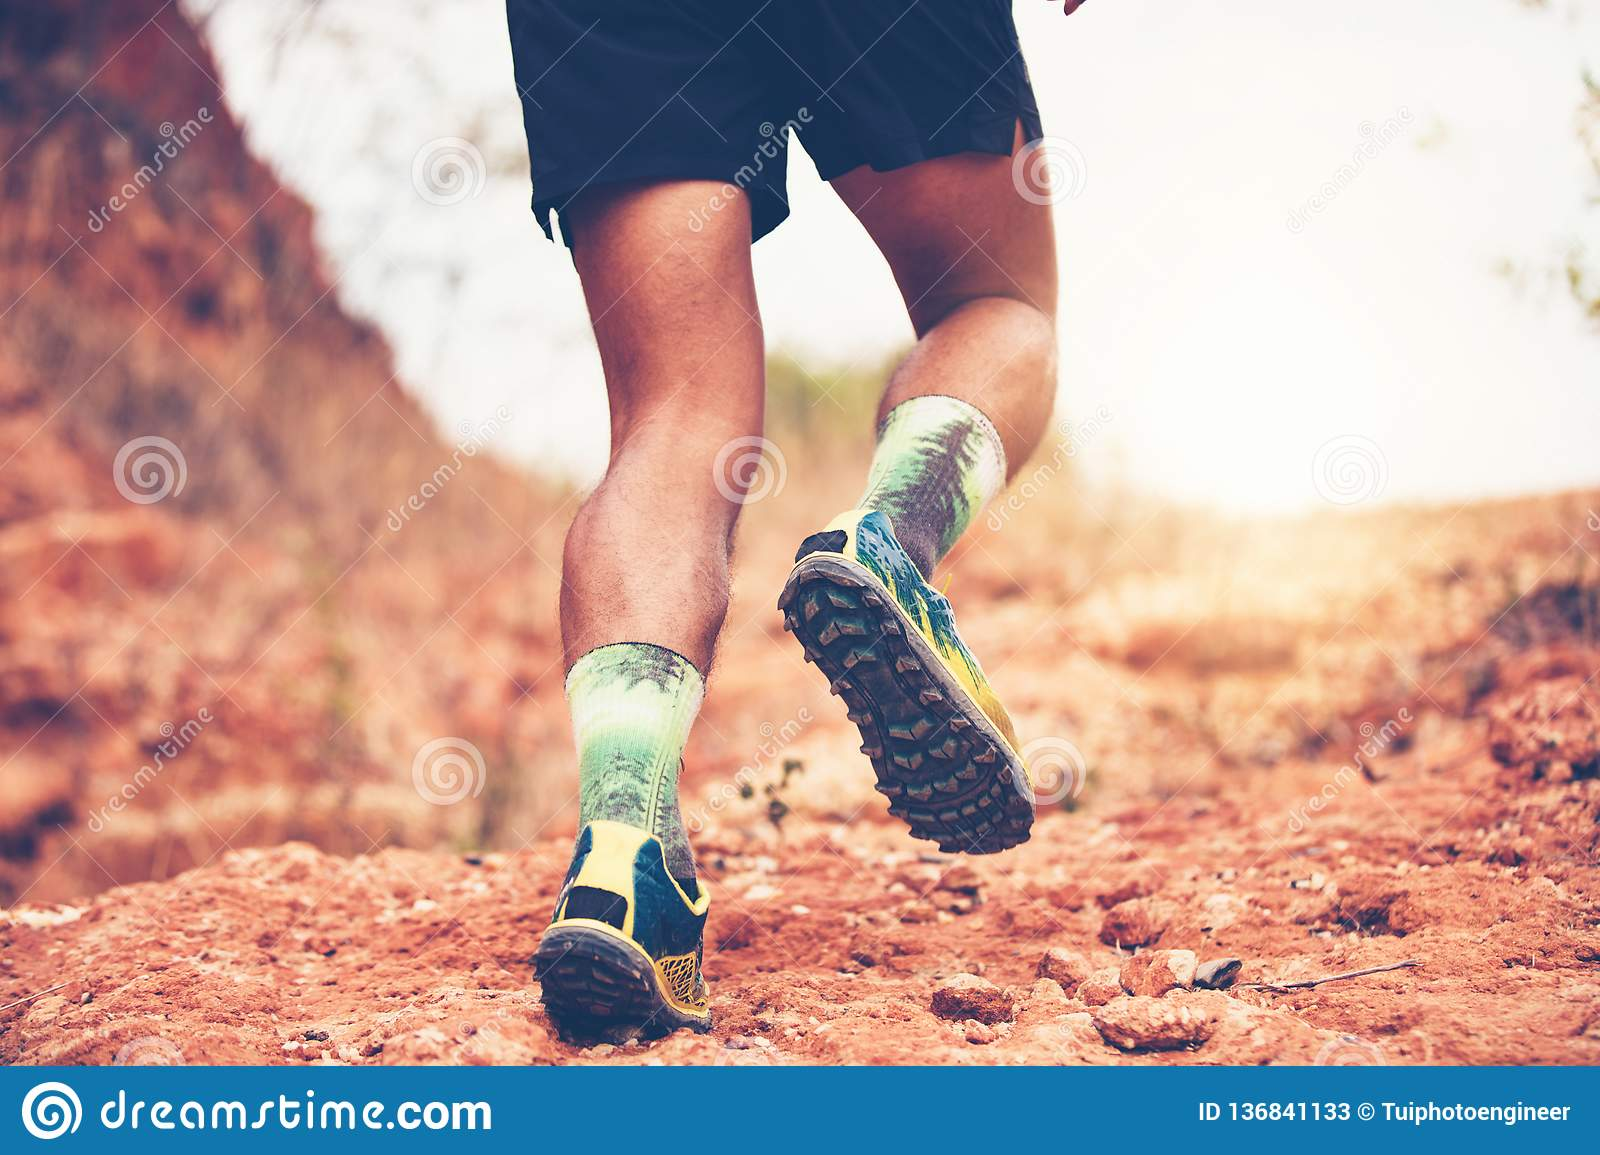 A man Runner of Trail . and Close up of an athlete`s feet wearing sports shoes for trail running in the mountains